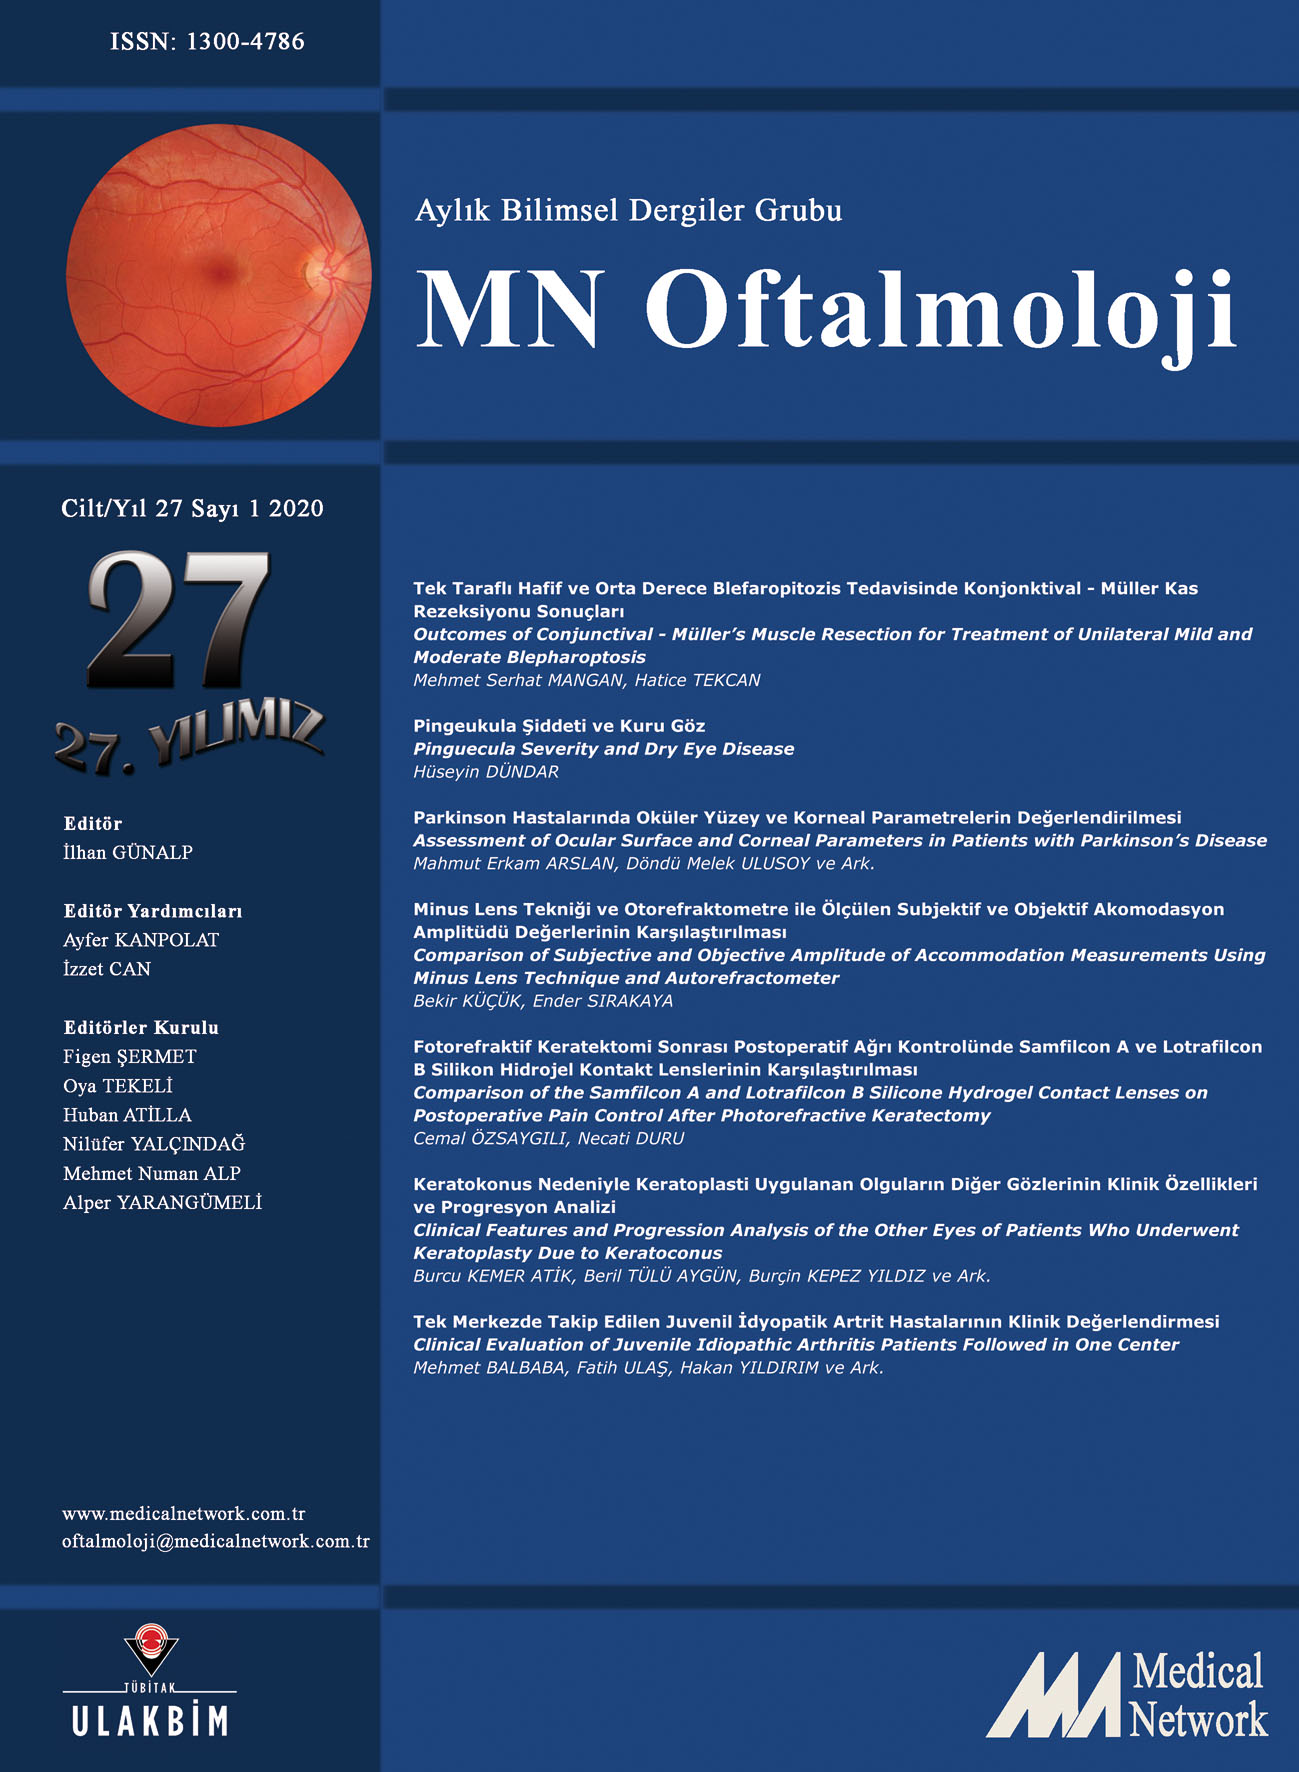 <p>MN Oftalmoloji Cilt: 27 Sayı: 1 2020 (MN Ophthalmology Volume: 27 No 1 2020)</p>